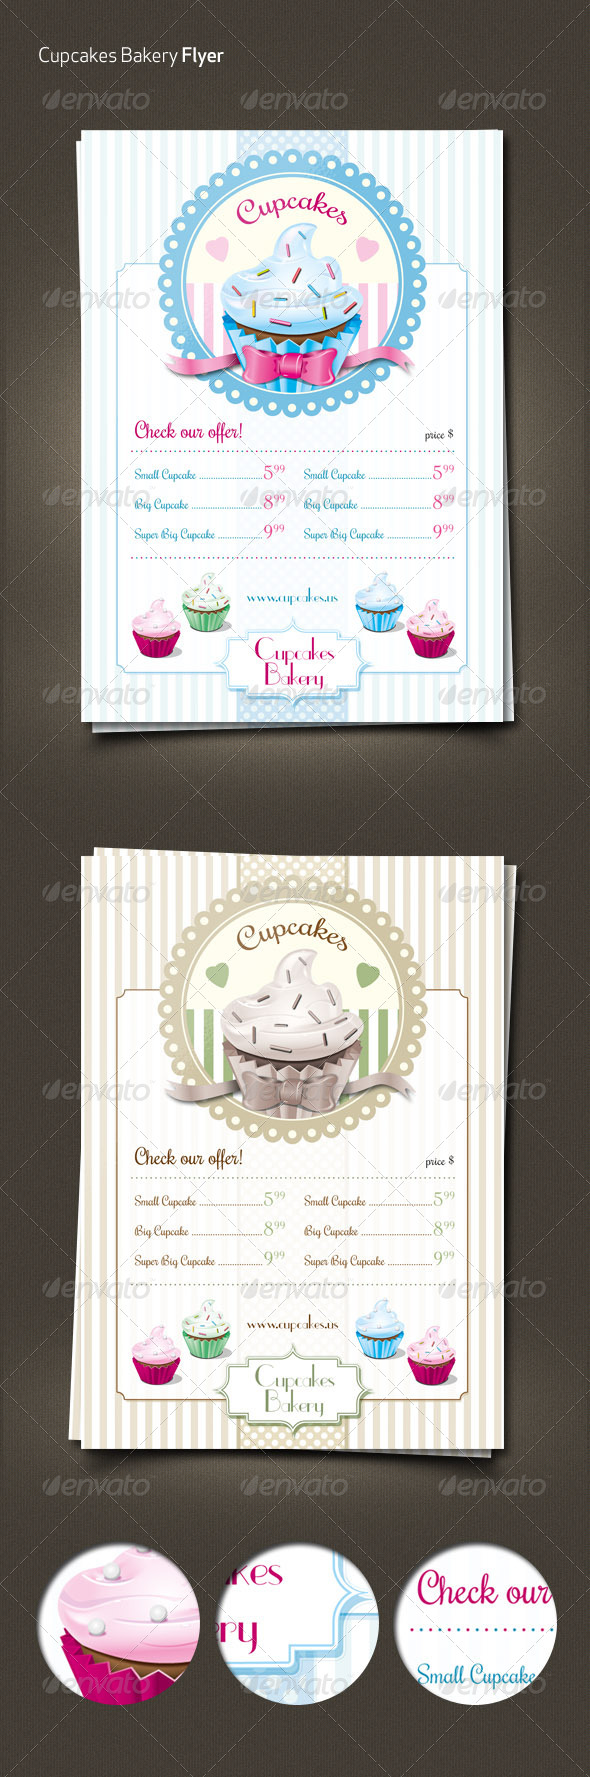 GraphicRiver Cupcakes Retro Menu Flyer 6428500